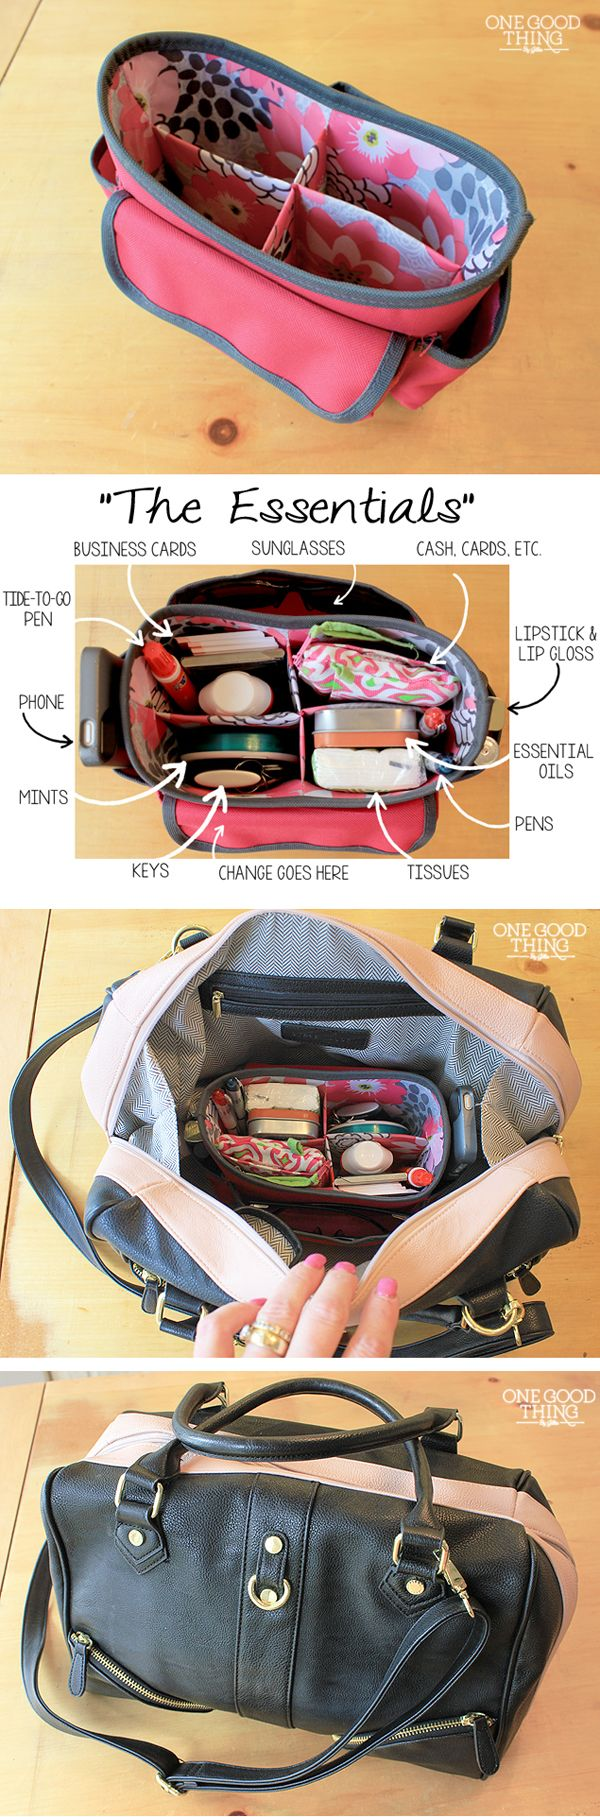 Mantenga organizadas las cosas pequeñas en el bolso con este orgaizador - Organizer for your purse with little pocket space, keep ahttp://www.onegoodthingbyjillee.com/2013/09/a-fast-and-easy-way-to-change-purses.htmlll the small stuff organized